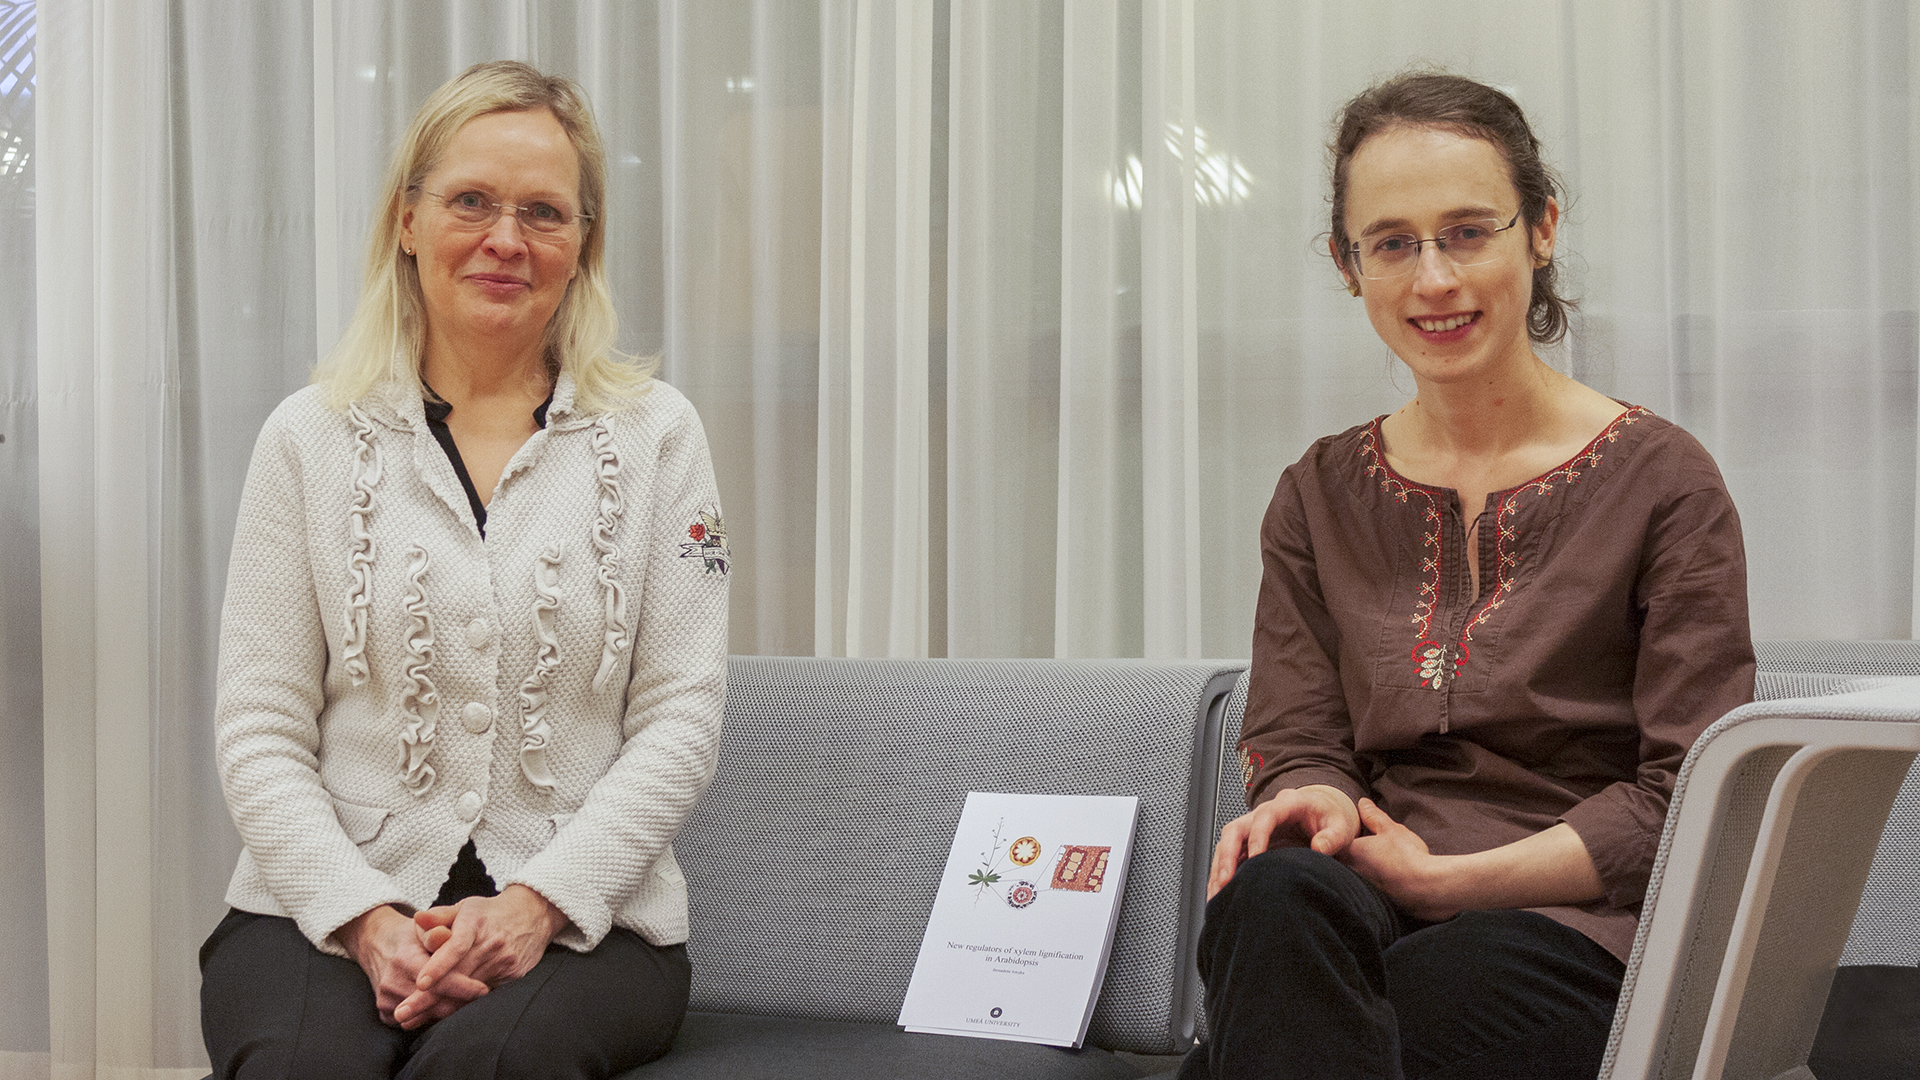 Bernadette Sztojka (right) and her supervisor Hannele Tuominen (left) chatting after Bernadette's defence